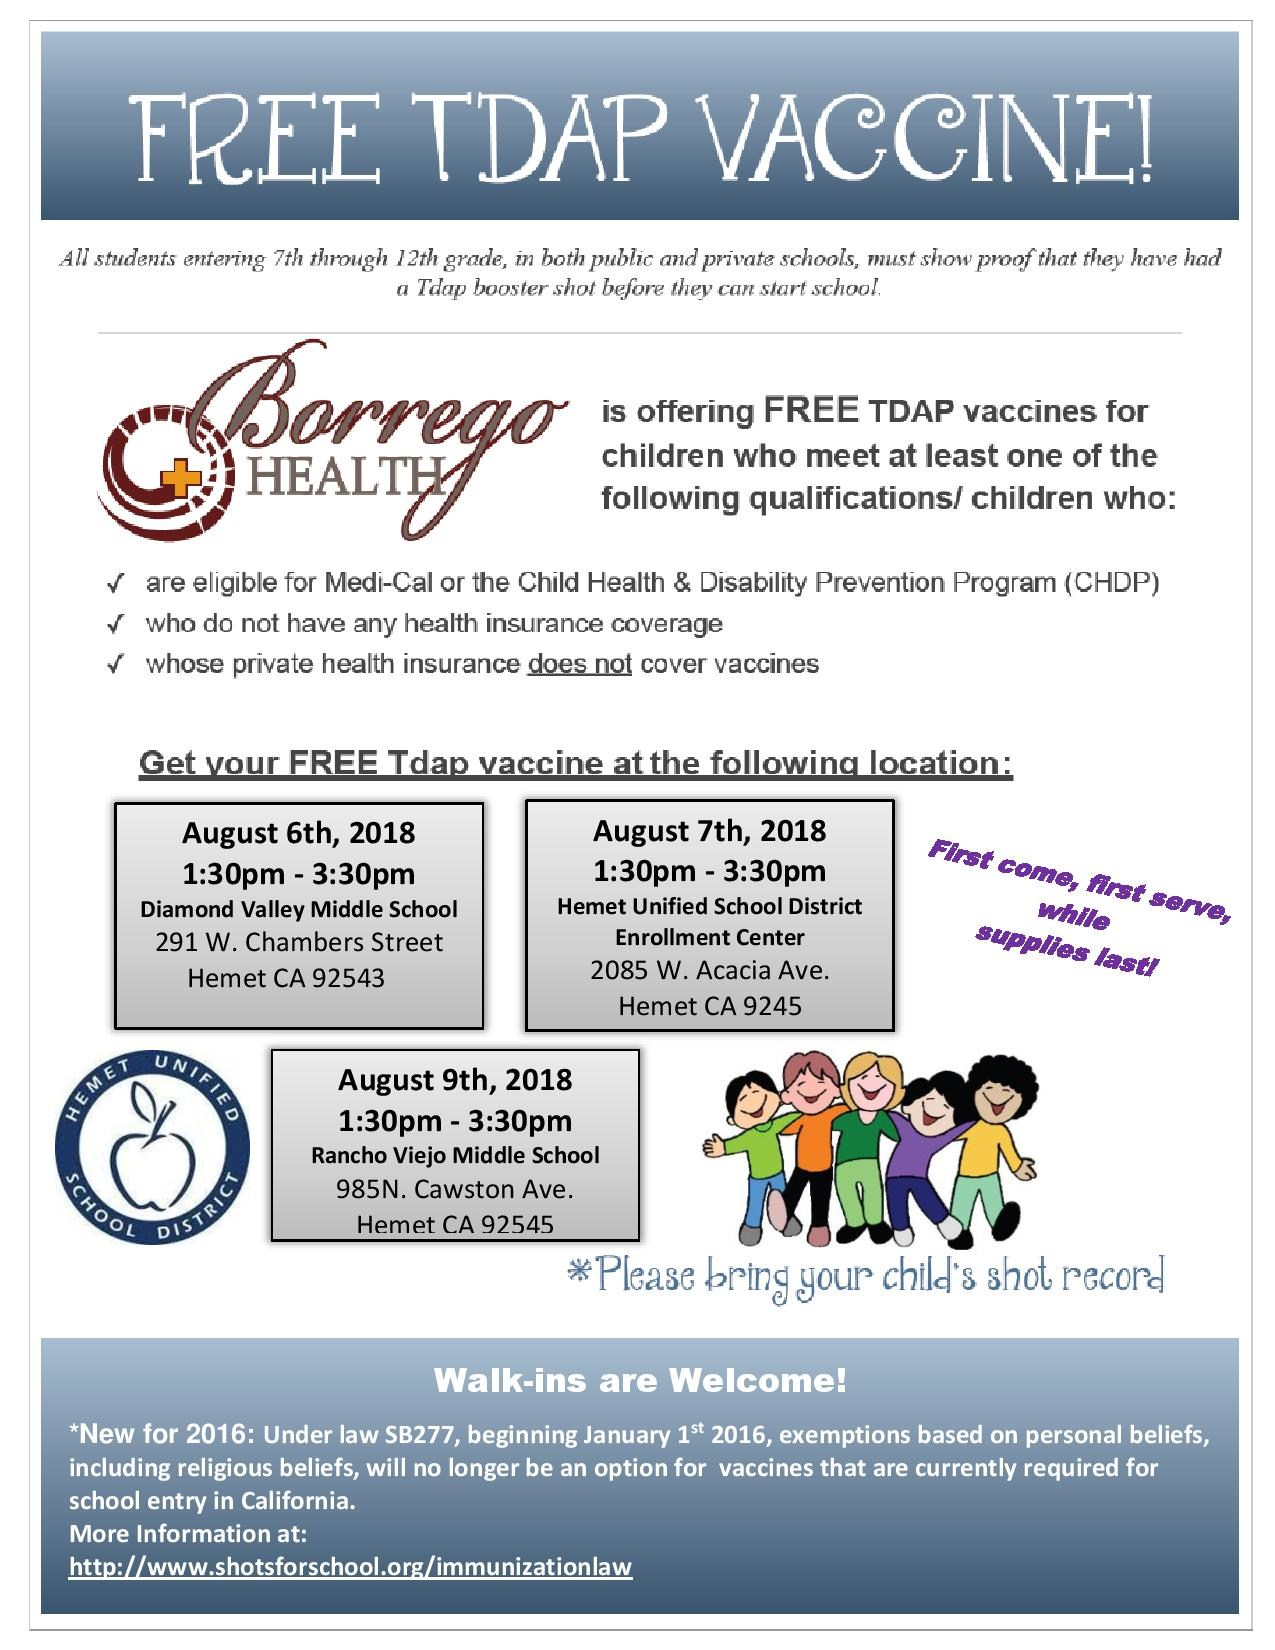 Borrego Health is offering Free TDAP vaccines for Children who meet at least one of the following qualifications: Are eligible for Medi-Cal or the Child Health & Disability Prevention Program Who do not have any Health Insurance Coverage Whose private Health insurance does not cover vaccines First come, first serve, while supplies last! August 6th, 2018  1:30pm - 3:30pm  Diamond Valley Middle School   August 7th, 2018  1:30pm - 3:30pm  Hemet Unified School District Enrollment Center August 9th, 2018  1:30pm - 3:30pm  Rancho Viejo Middle School